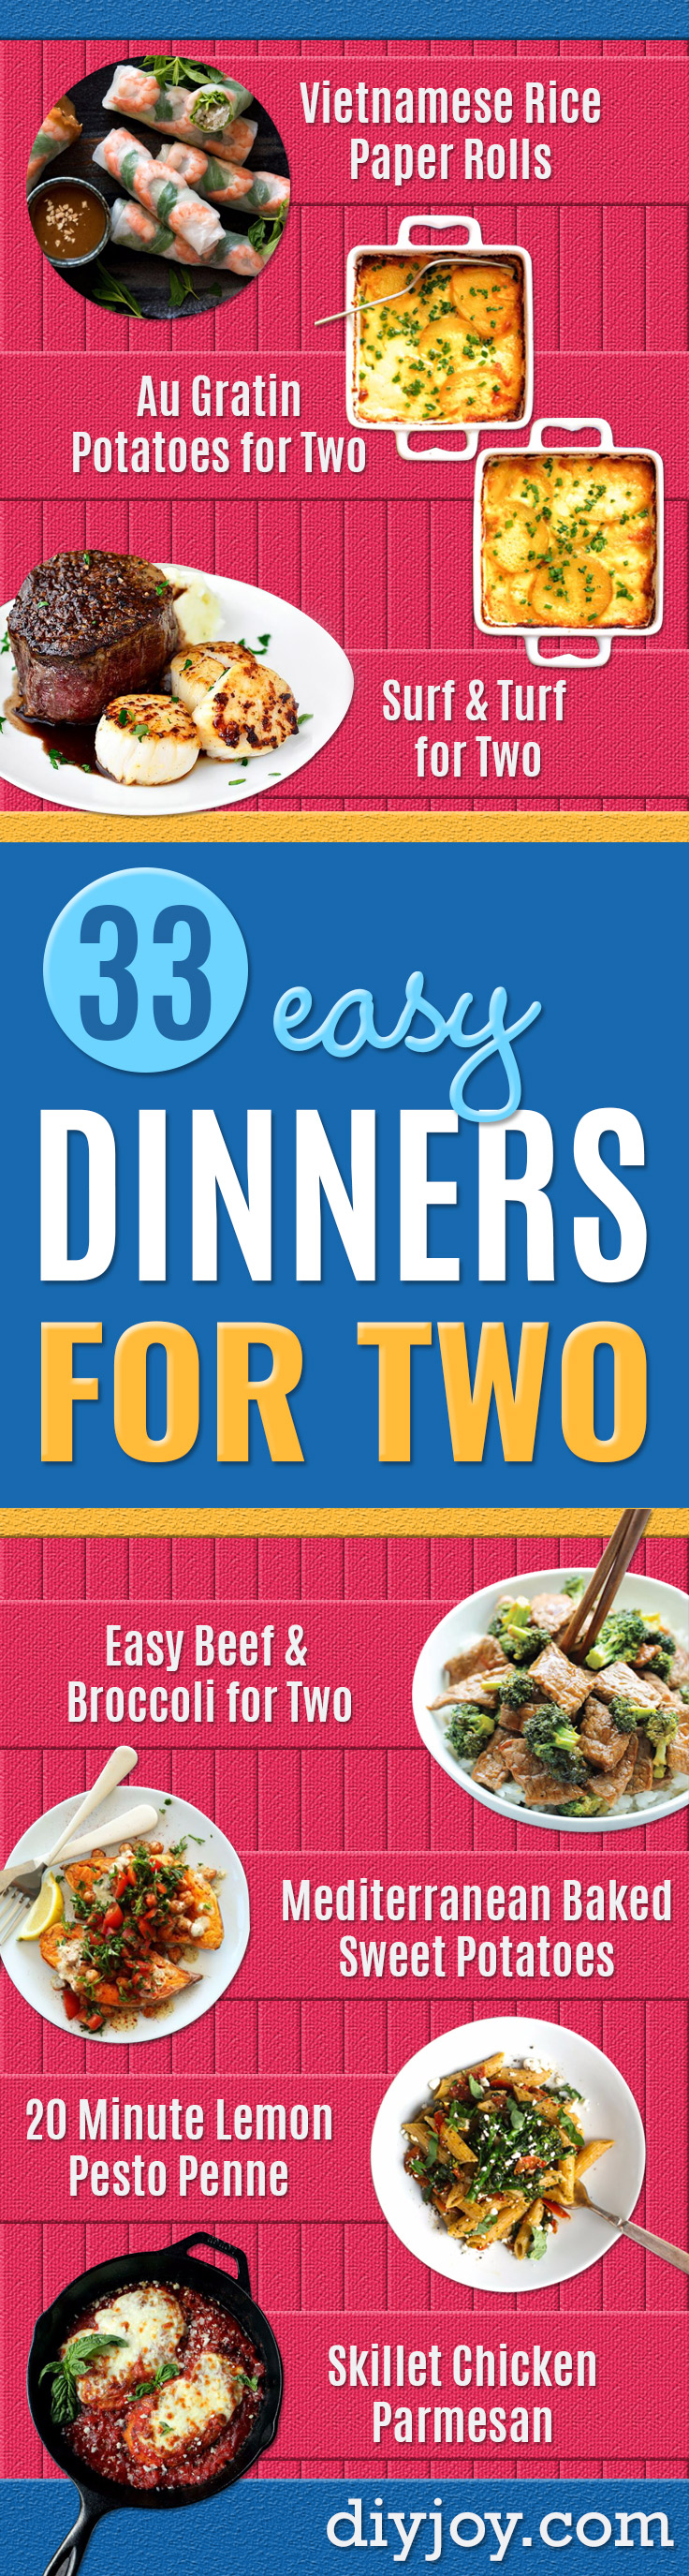 Easy Dinner Ideas for Two - Quick, Fast and Simple Recipes to Make for Two People - Freeze and Make Ahead Dinner Recipe Tips for Best Weeknight Dinners - Chicken, Fish, Vegetable, No Bake and Vegetarian Options - Crockpot, Microwave, Healthy, Lowfat Options